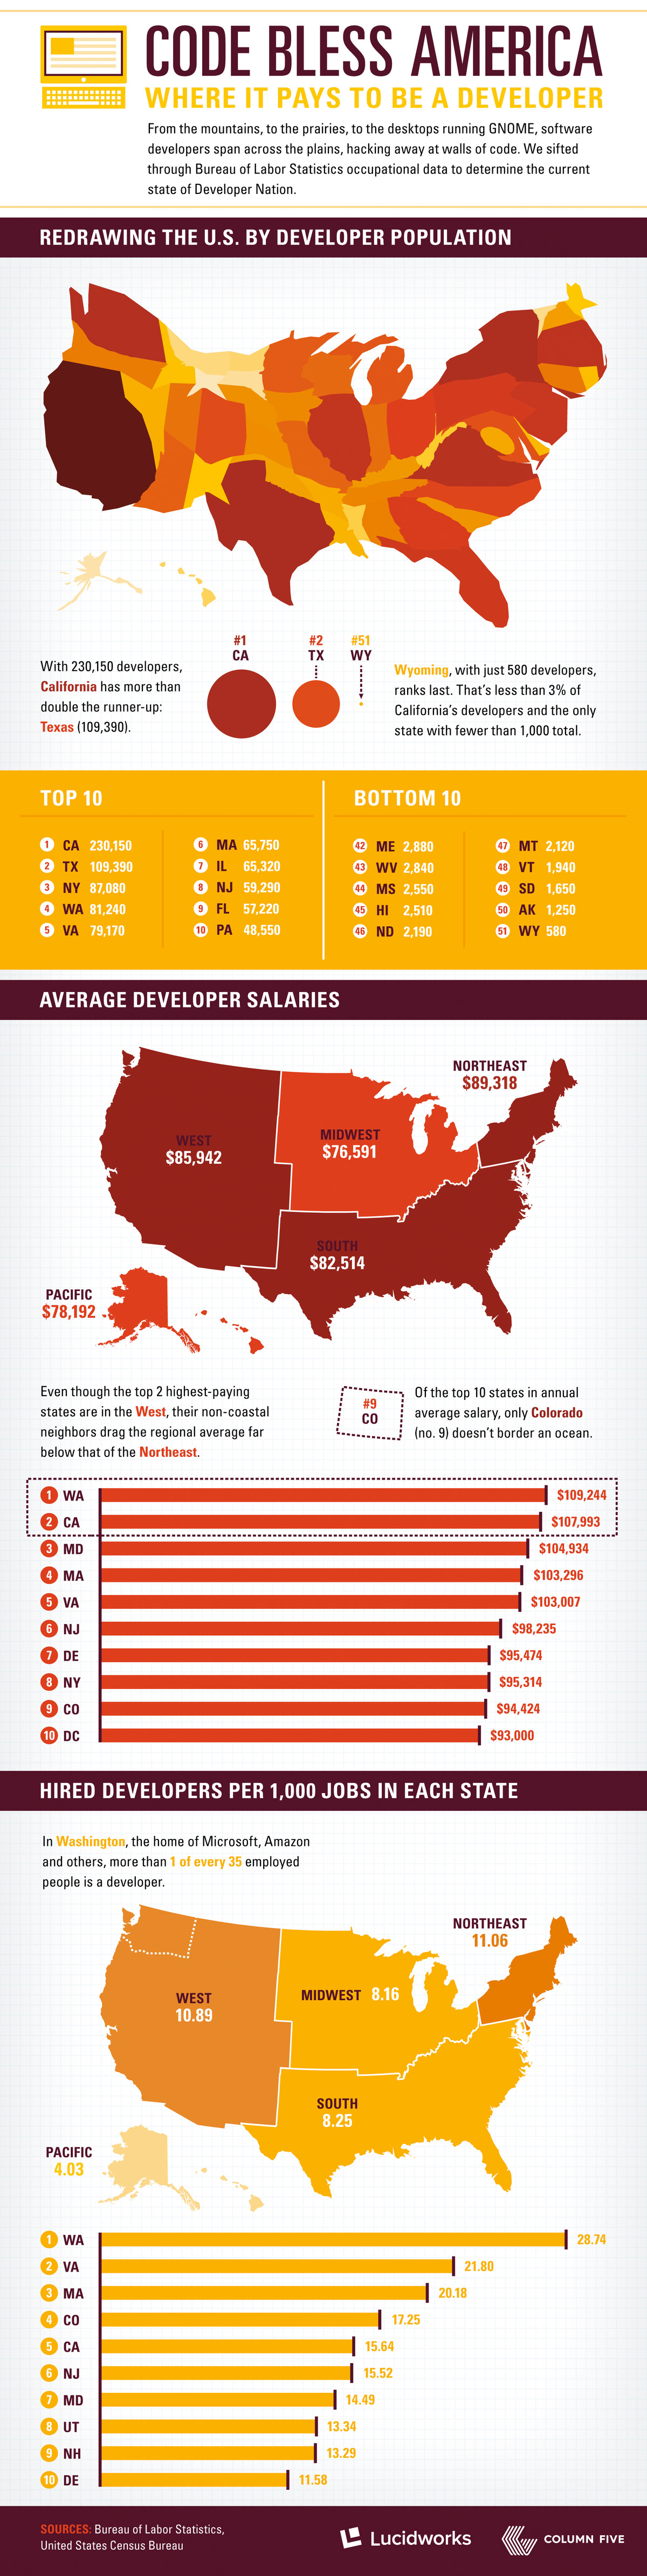 Entrepreneurs Need Web Developers Like Planes Need Wings. So, Where Are They? (Infographic)